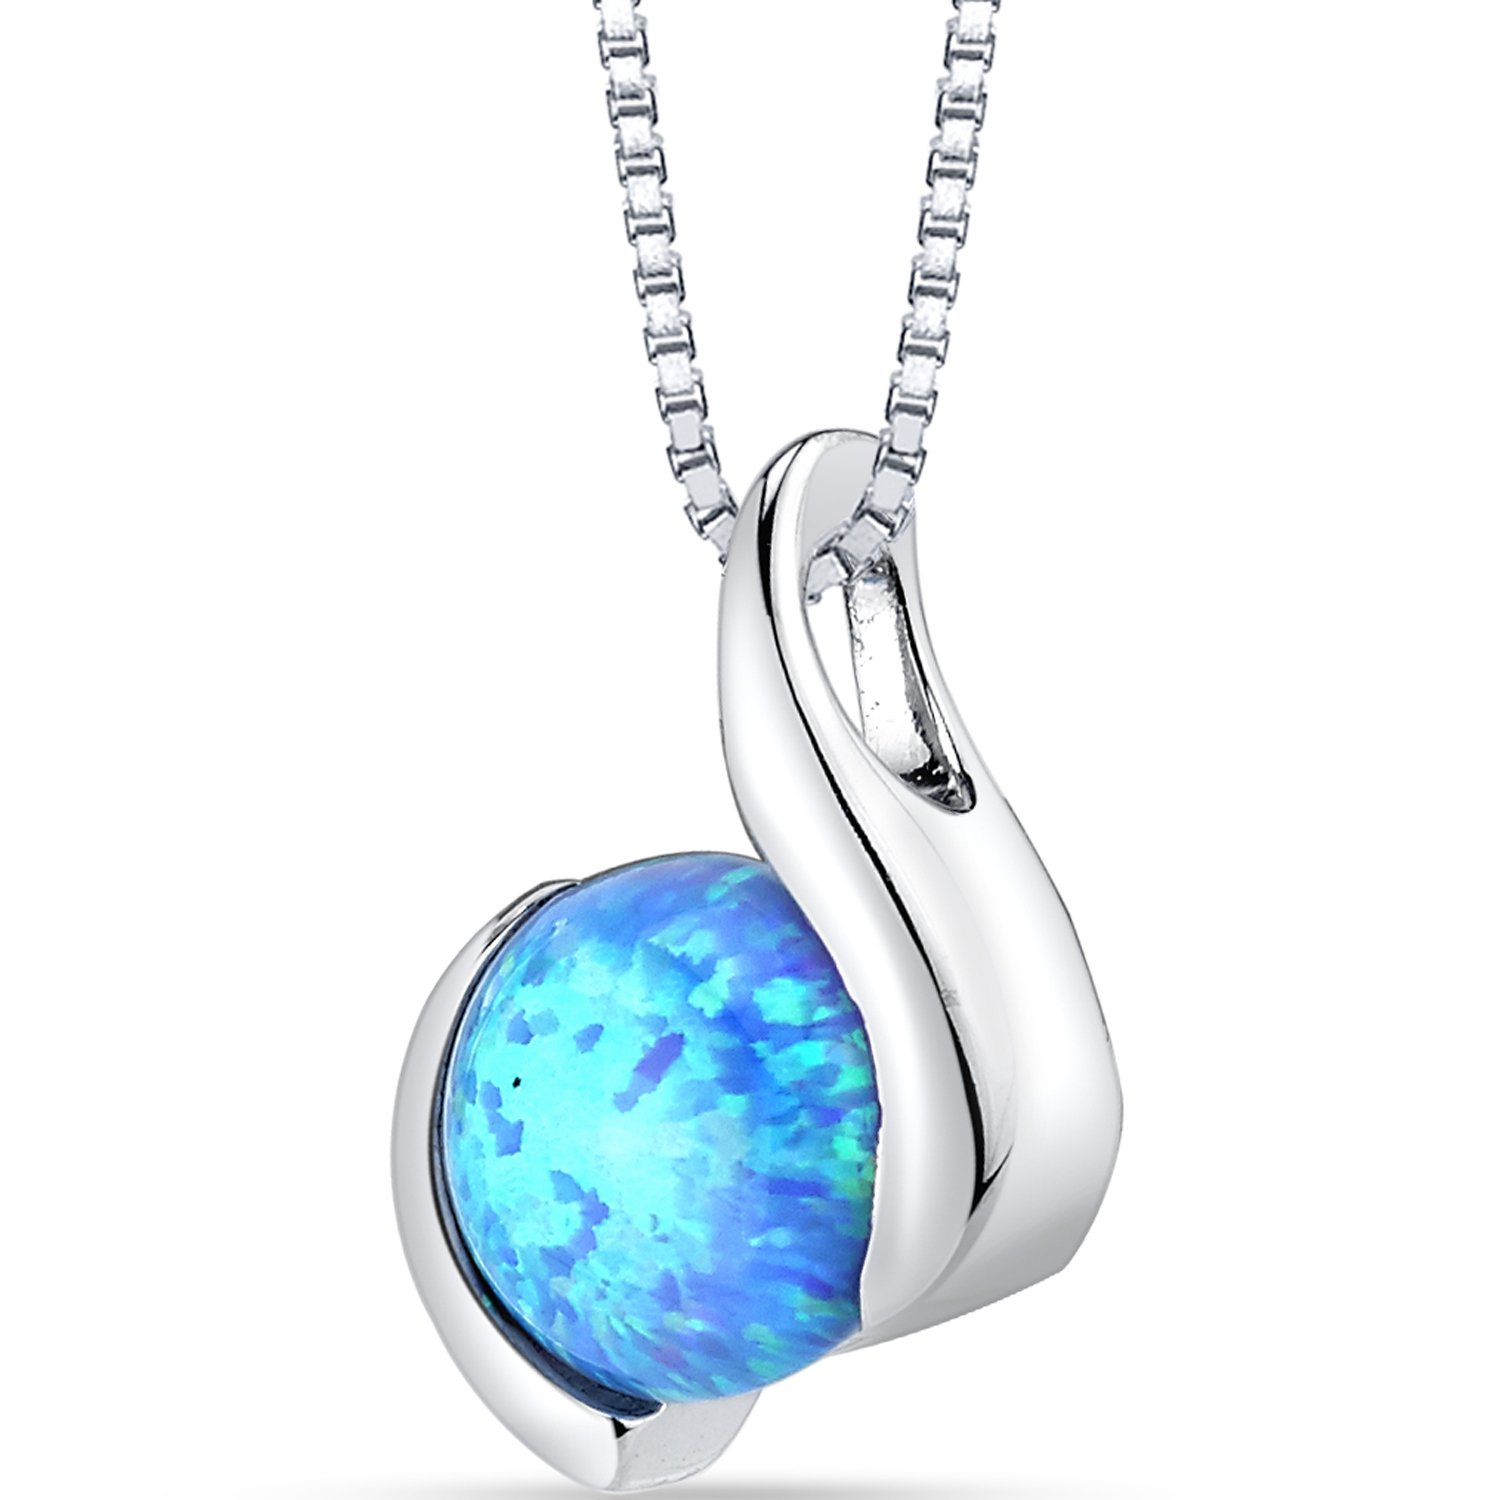 Created Powder Blue Opal Iris Pendant Necklace Sterling Silver 1.50 Carats